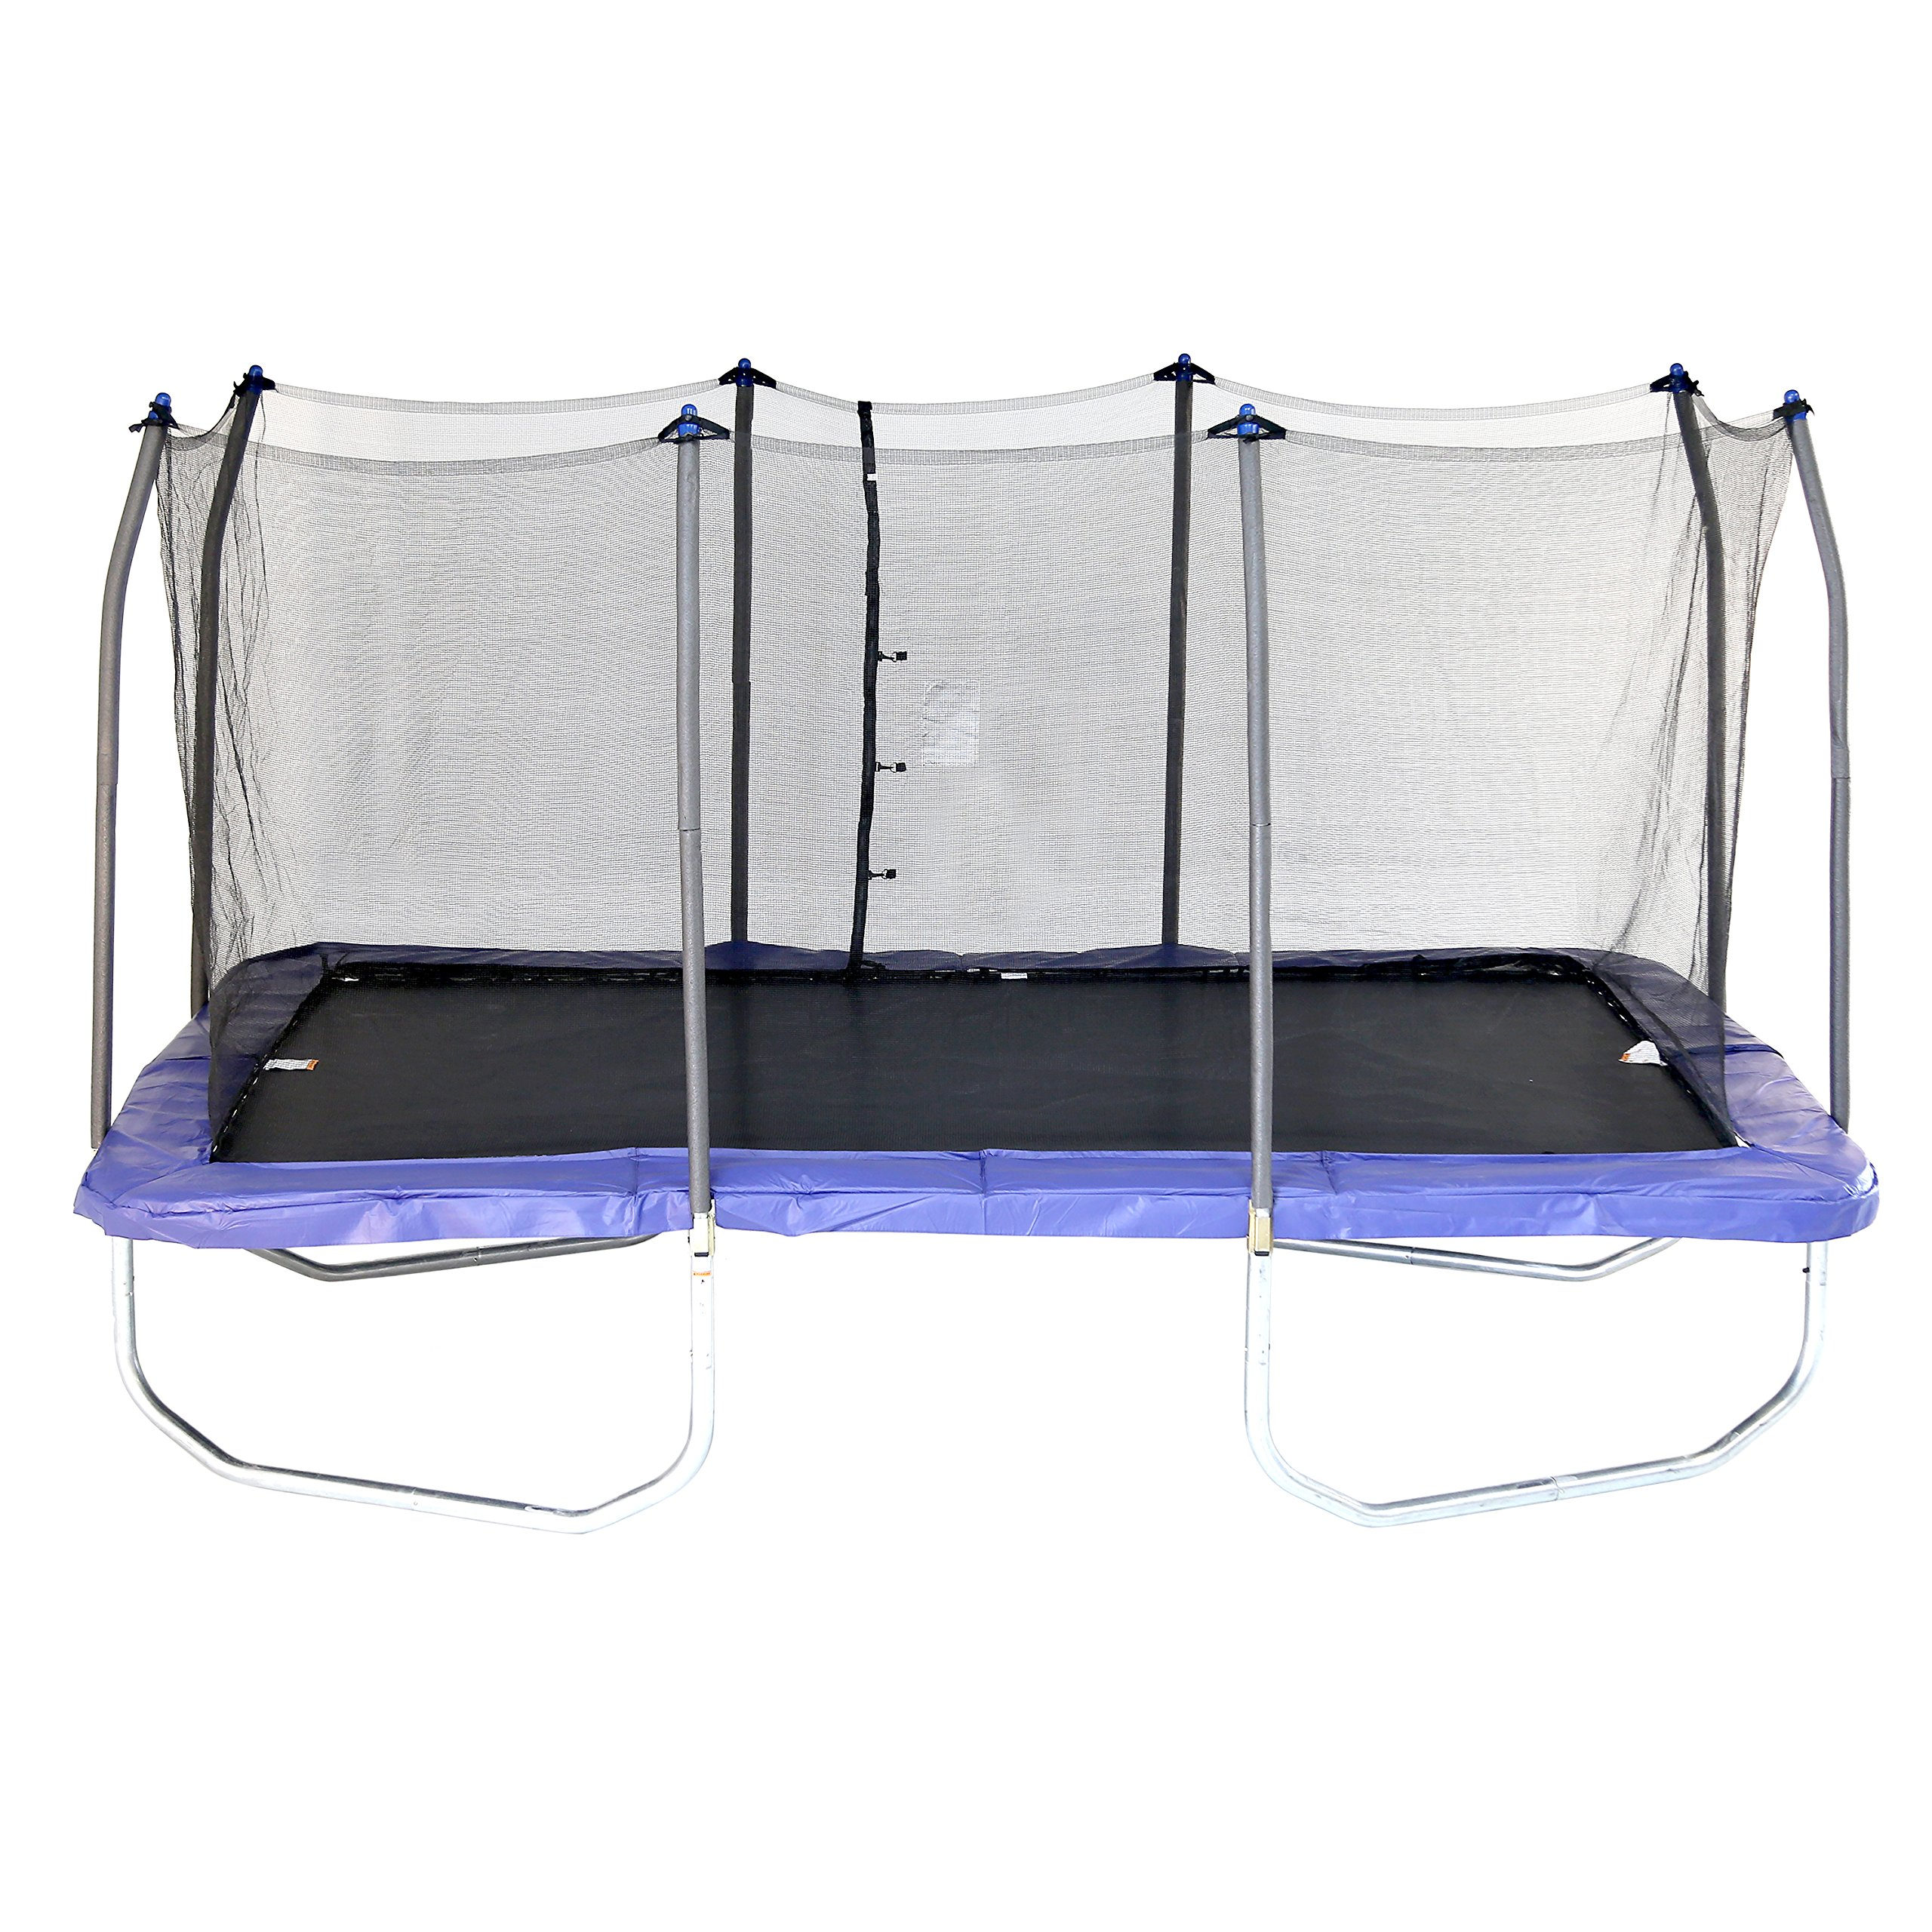 Skywalker Rectangle Trampoline with Enclosure, 15-Feet by Skywalker